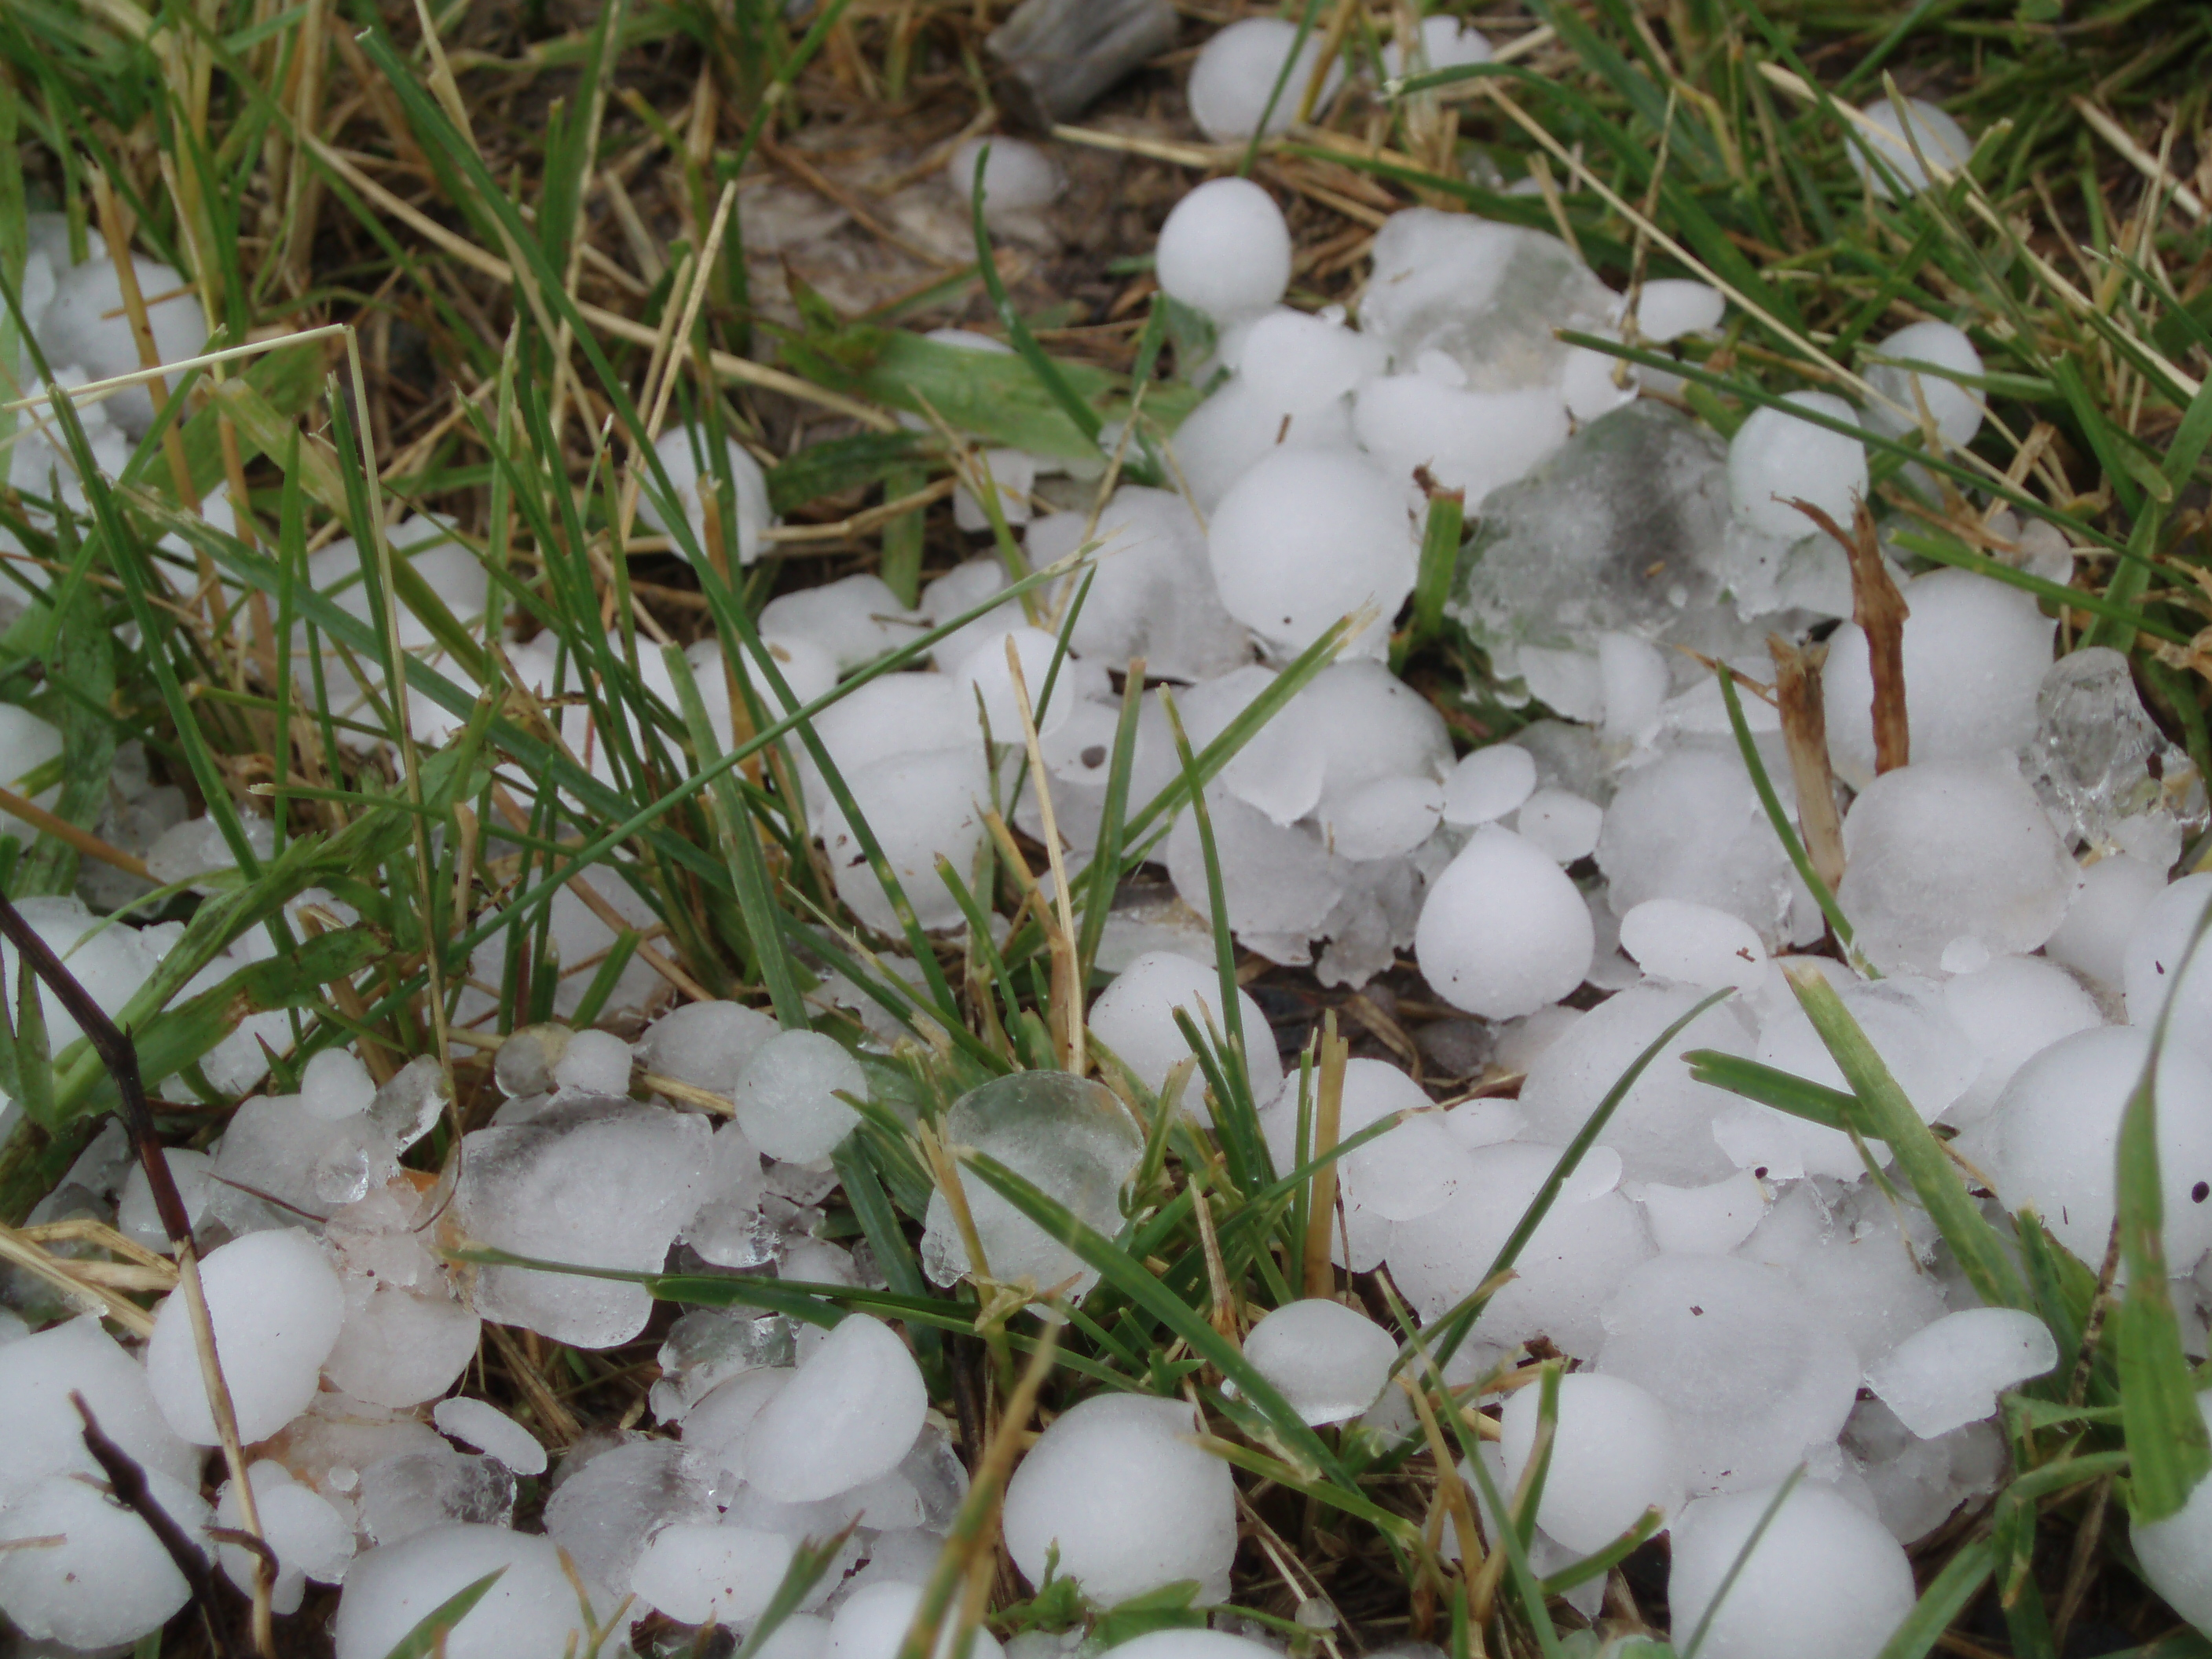 michigan farmers can get loan help after hail storms michigan radio